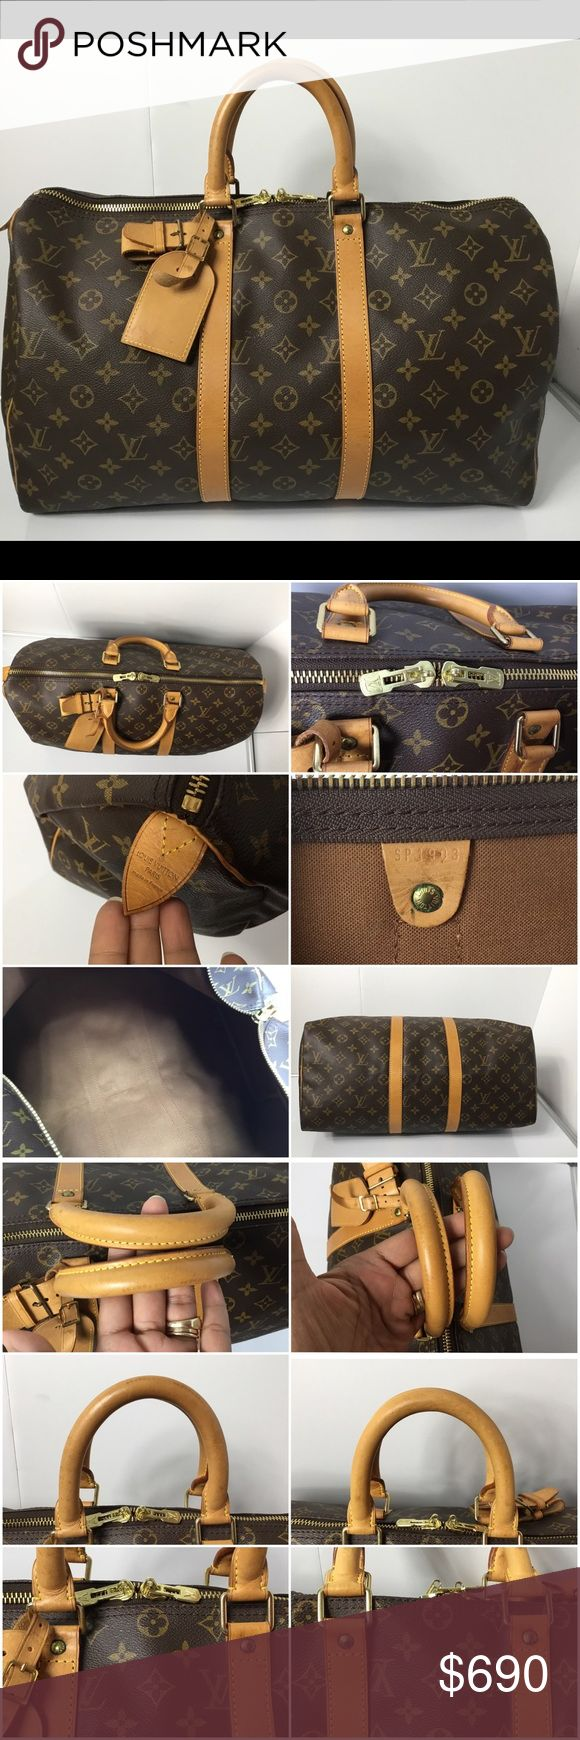 100% Authentic Louis Vuitton Monogram Keepall 45 100% Authentic Louis Vuitton Monogram Keepall 45 with Luggage Tag, Extender Lock and Key. Pre-Owned Bag in very good used condition. No rip , no crack, no tears on the canvas. Very clean inside. No bad odor. Leather, Handle and Bottom area has stains, marks and sign of wear. MADE IN FRANCE - DATE CODE SP1903 ( October 1993 )  Please check all the pictures. -In order to avoid unnecessary return. 100% authentic or your money back - no return…